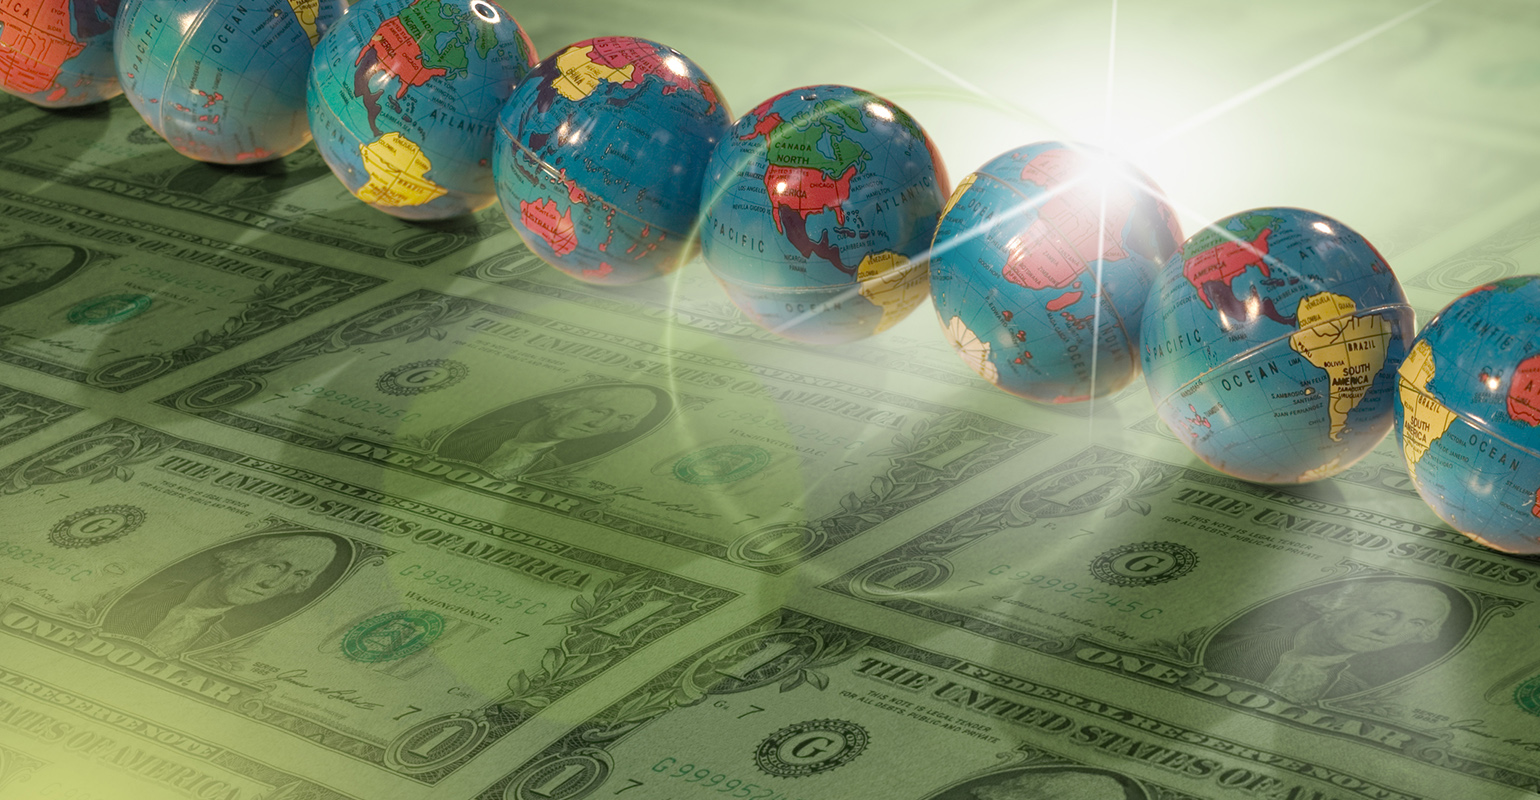 Access here alternative investment news about Will Foreign Investors Come Back To U.S?